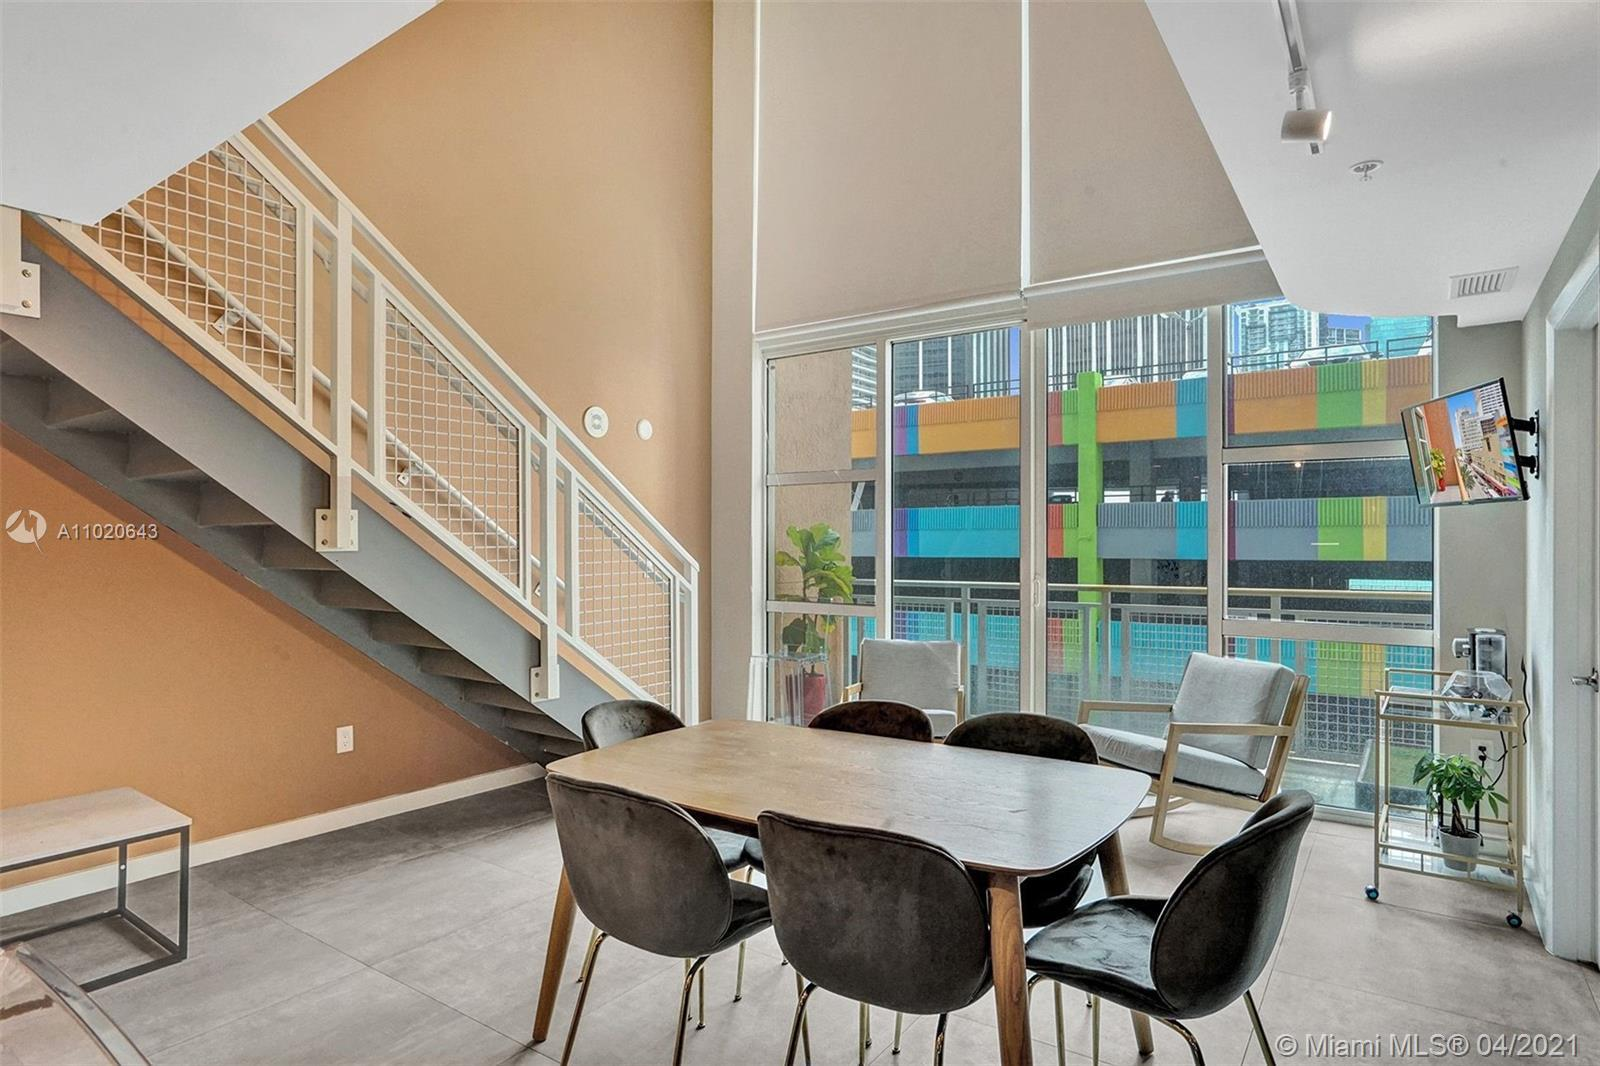 Exclusive two-level loft in the heart of Miami for sale! This fully furnished, beautiful, modern and